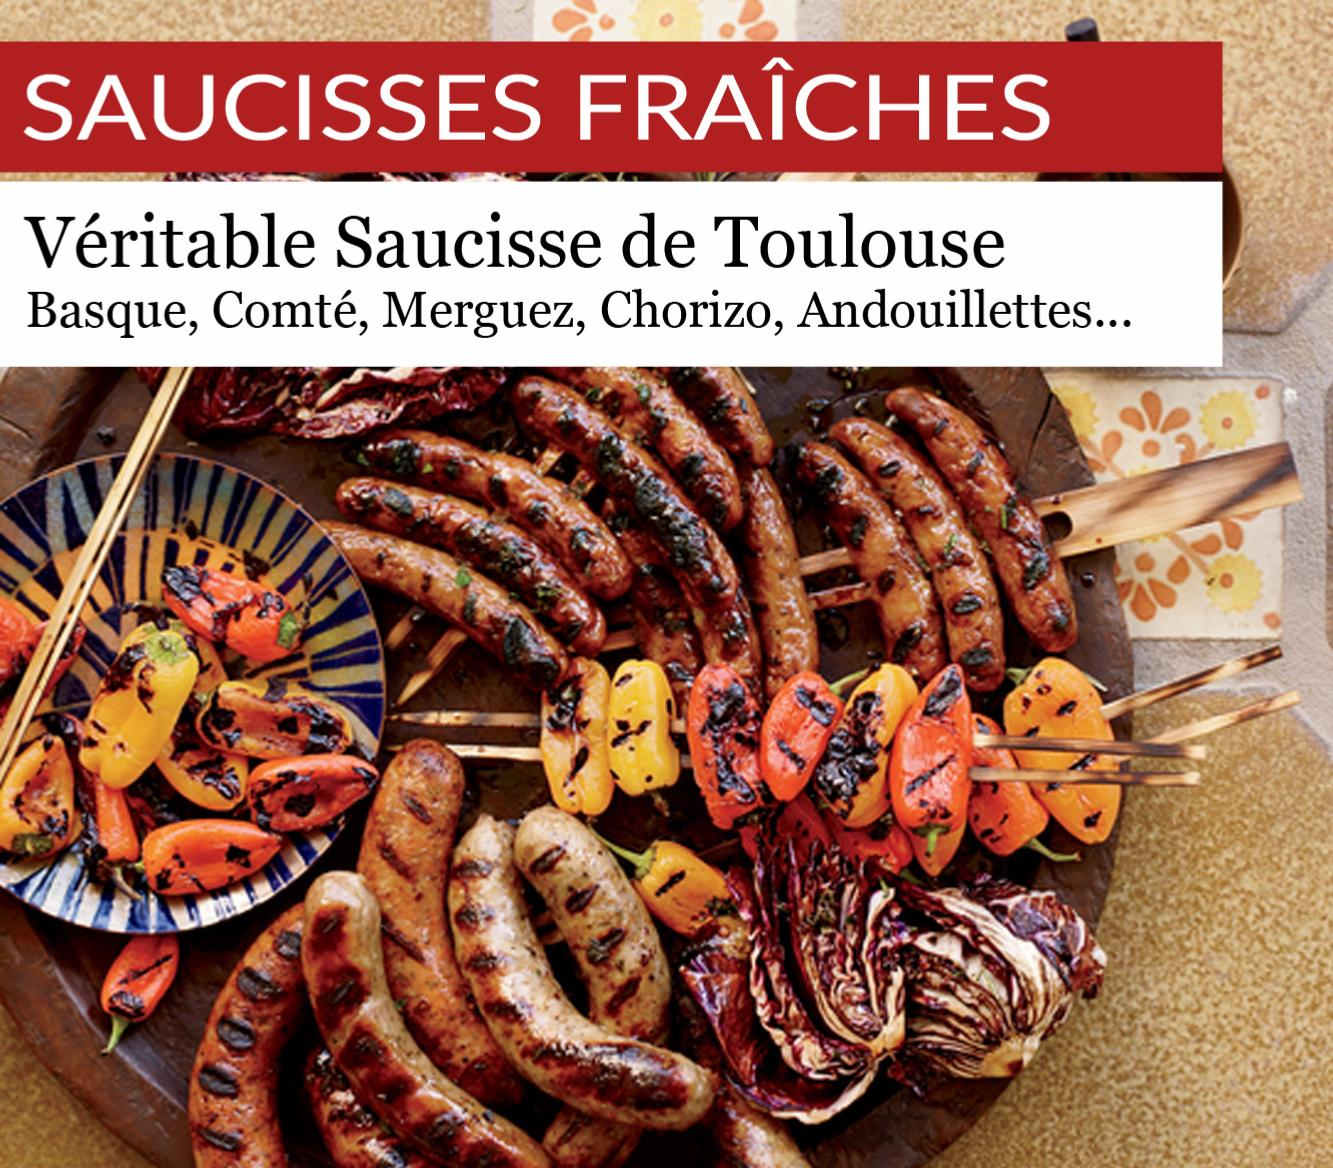 Fabrication saucisse de toulouse maison ventana blog - Fabrication de saucisson sec maison ...